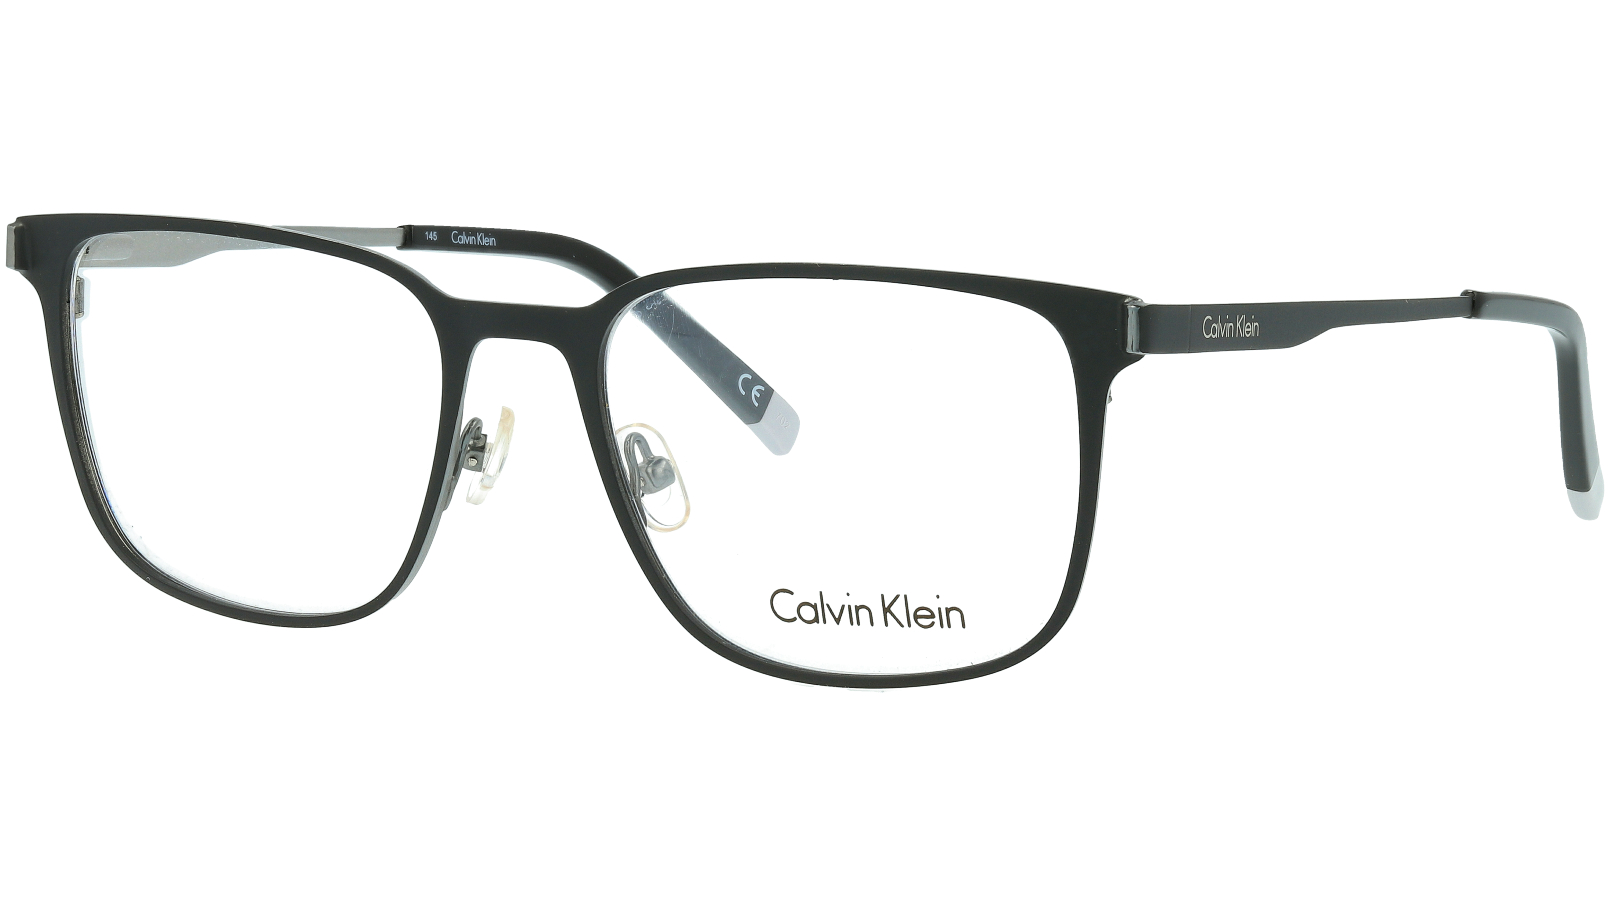 CALVIN KLEIN CK5454 115 54 BLACK Glasses